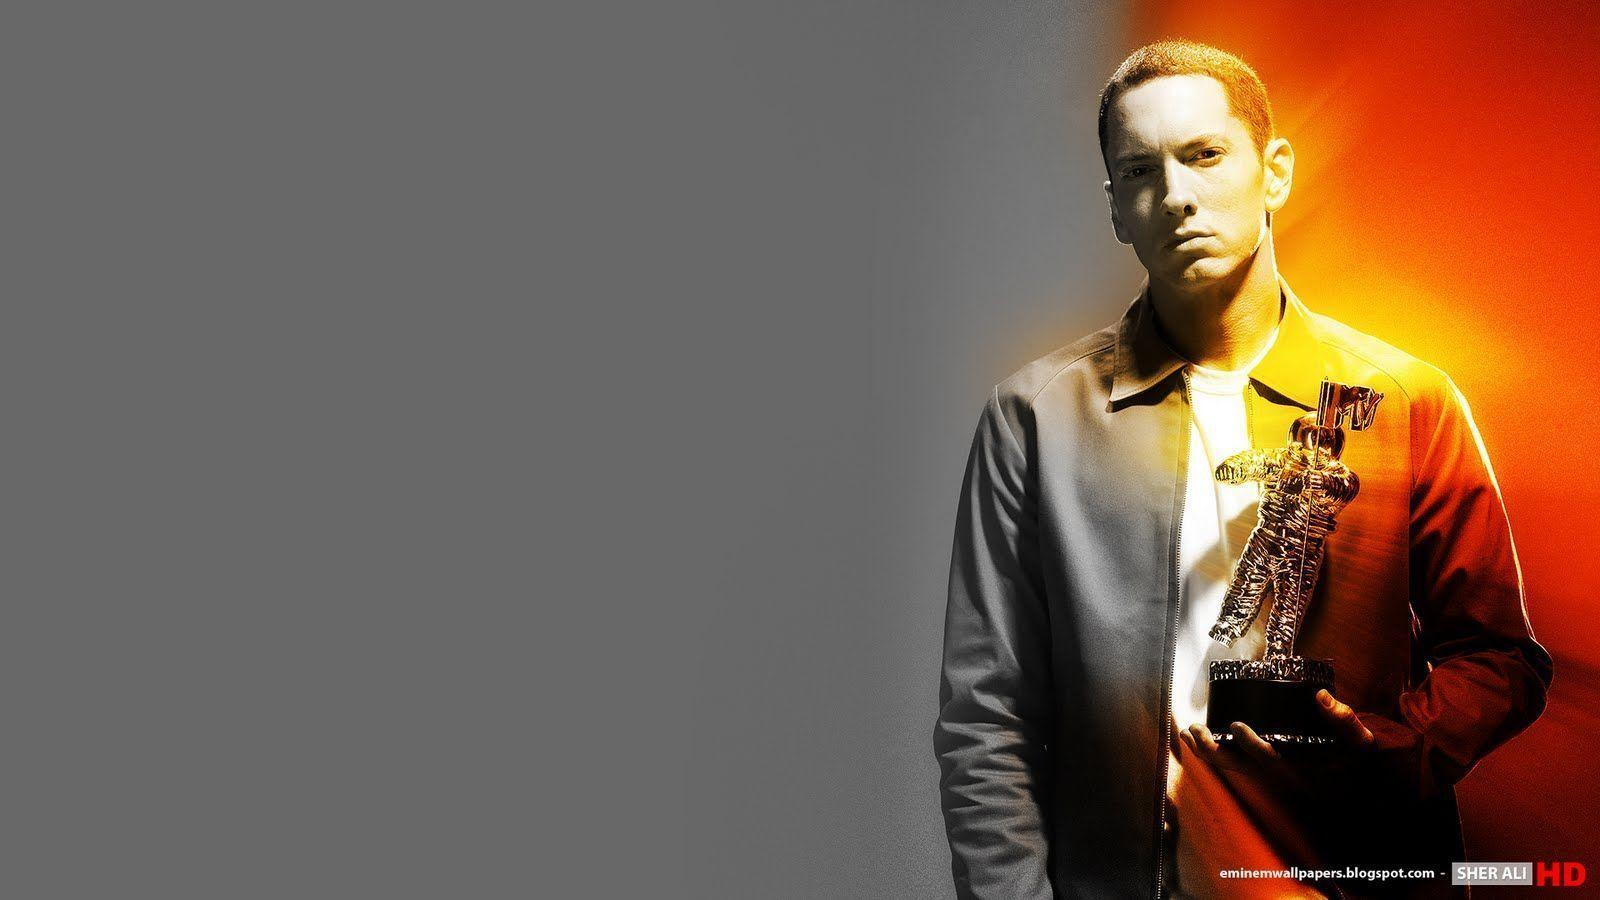 eminem wallpapers - photo #2